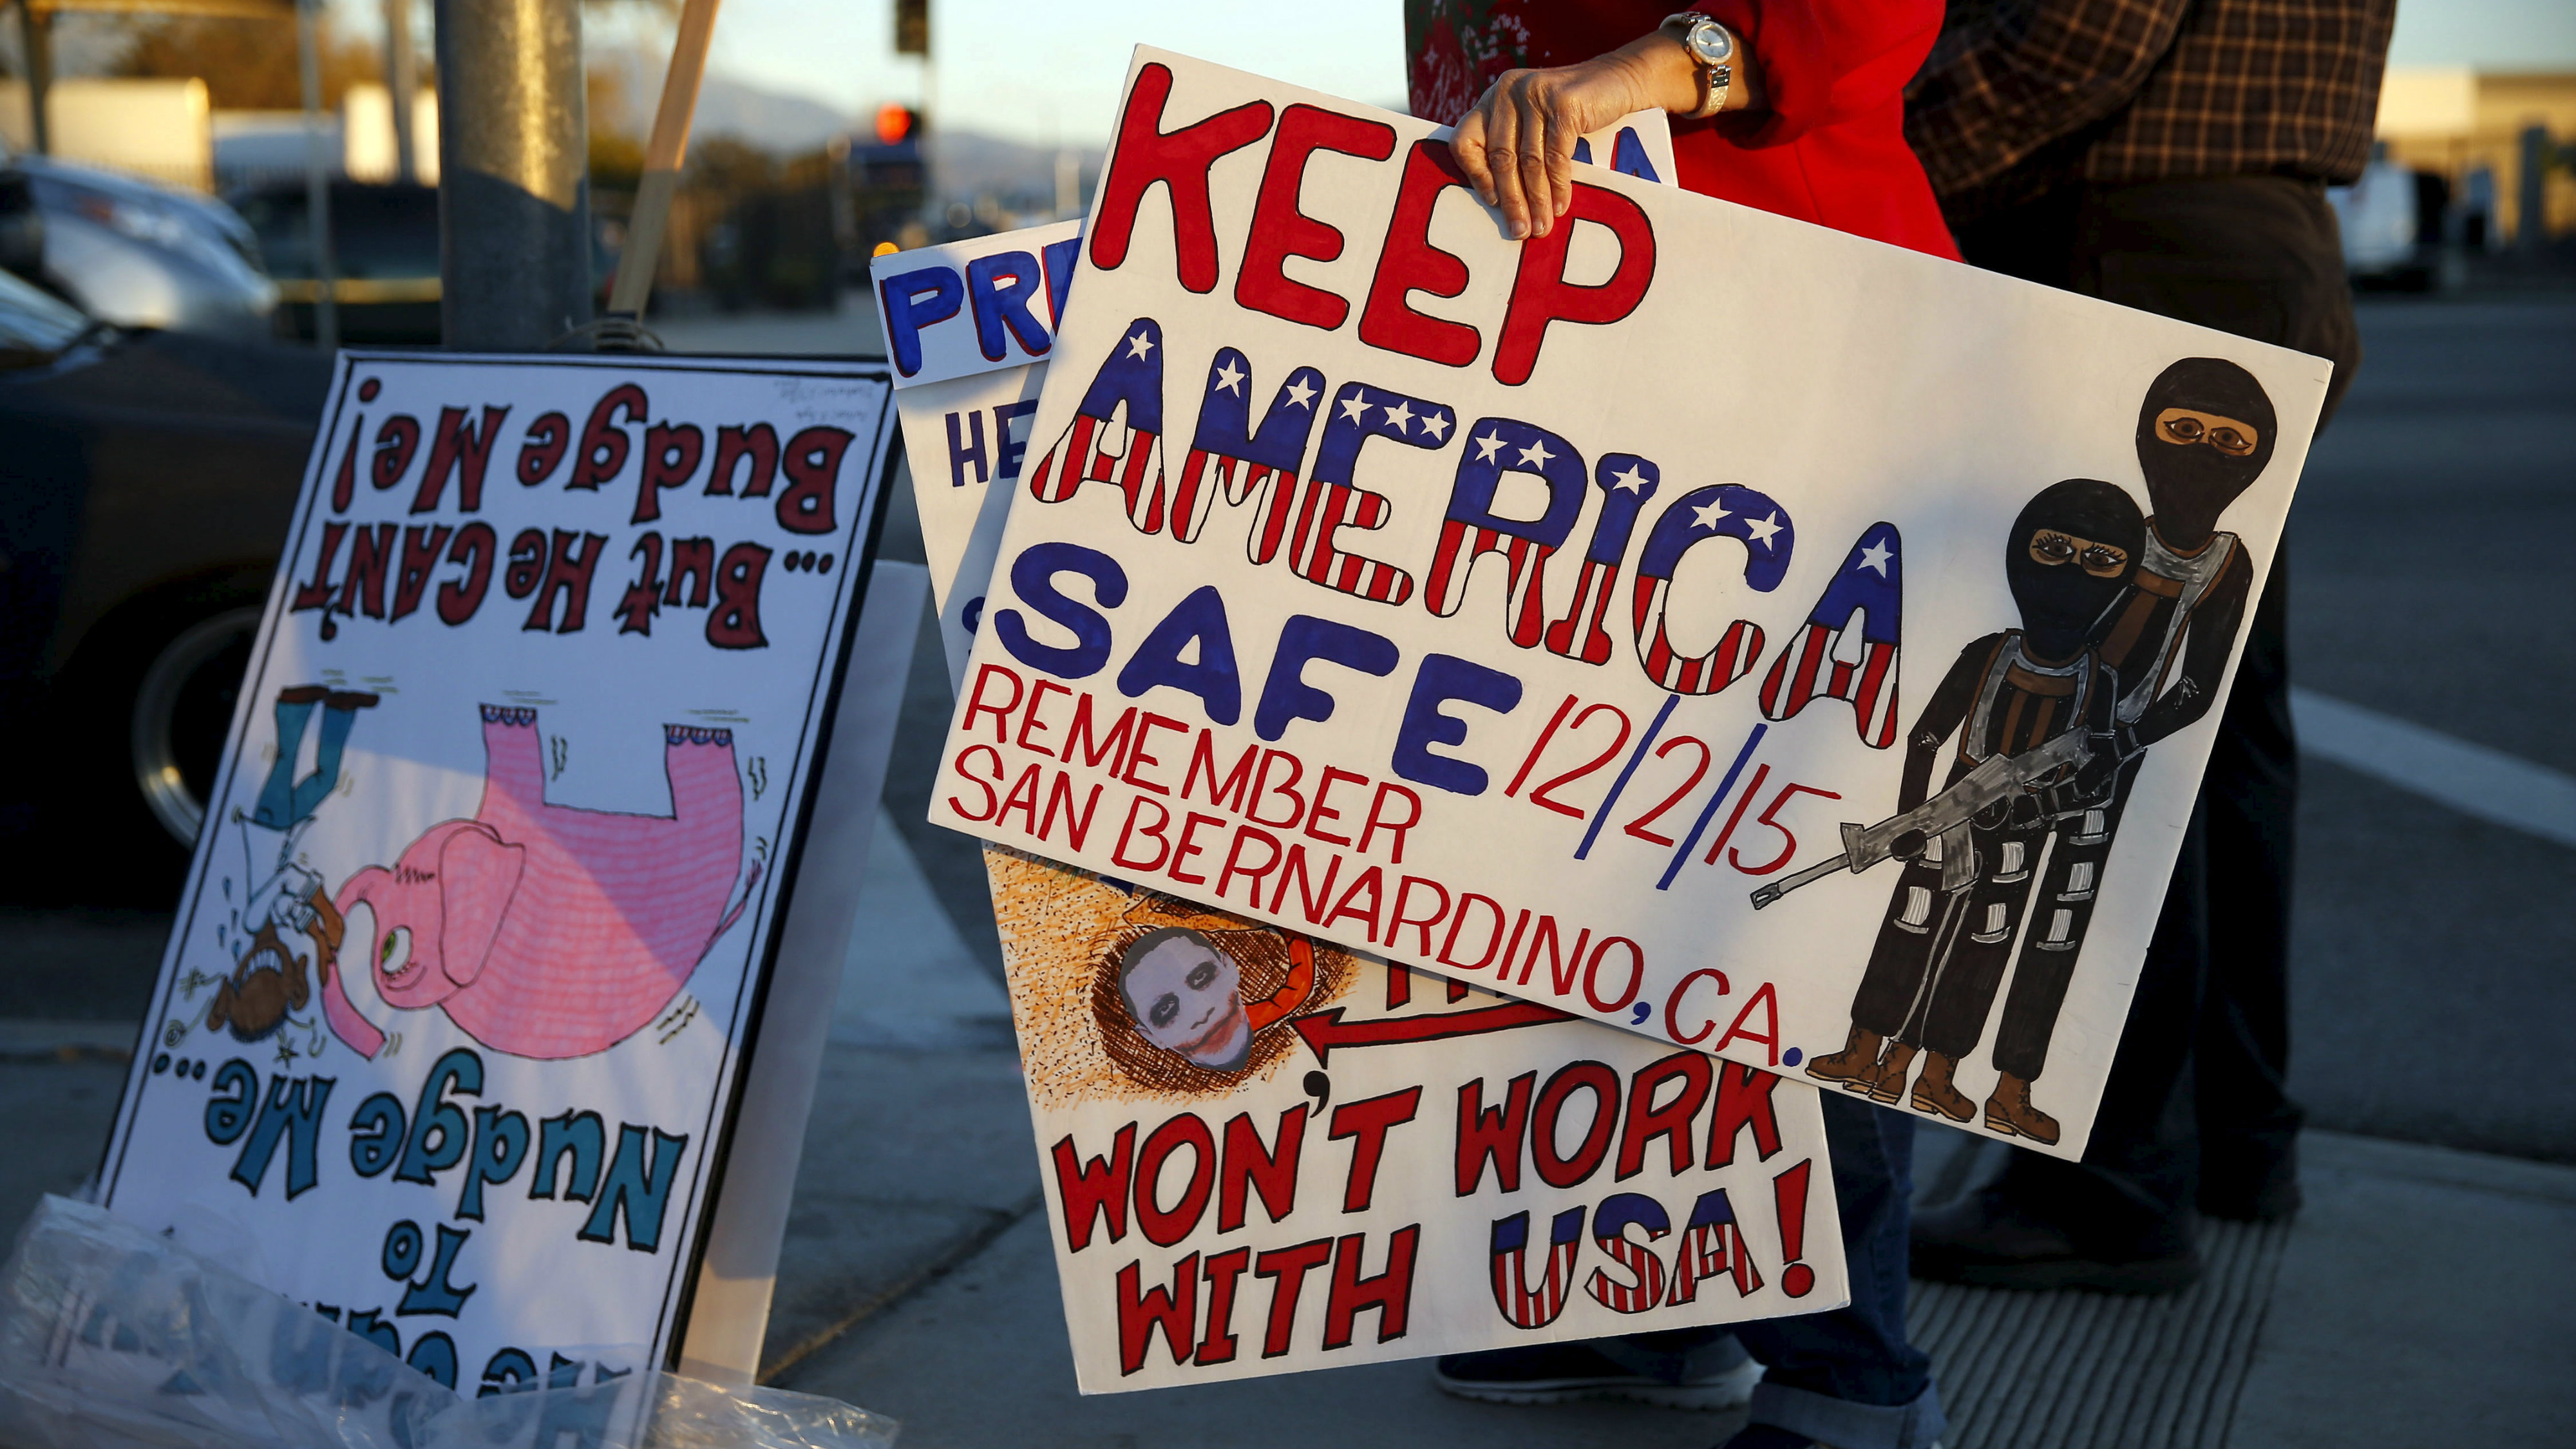 Deann D'Lean holds signs as she protests against ISIS and President Obama across from a makeshift memorial for victims of the San Bernardino shooting, ahead of President Obama's visit with the victims' families in San Bernardino, California on December 18, 2015. REUTERS/Patrick T. Fallon